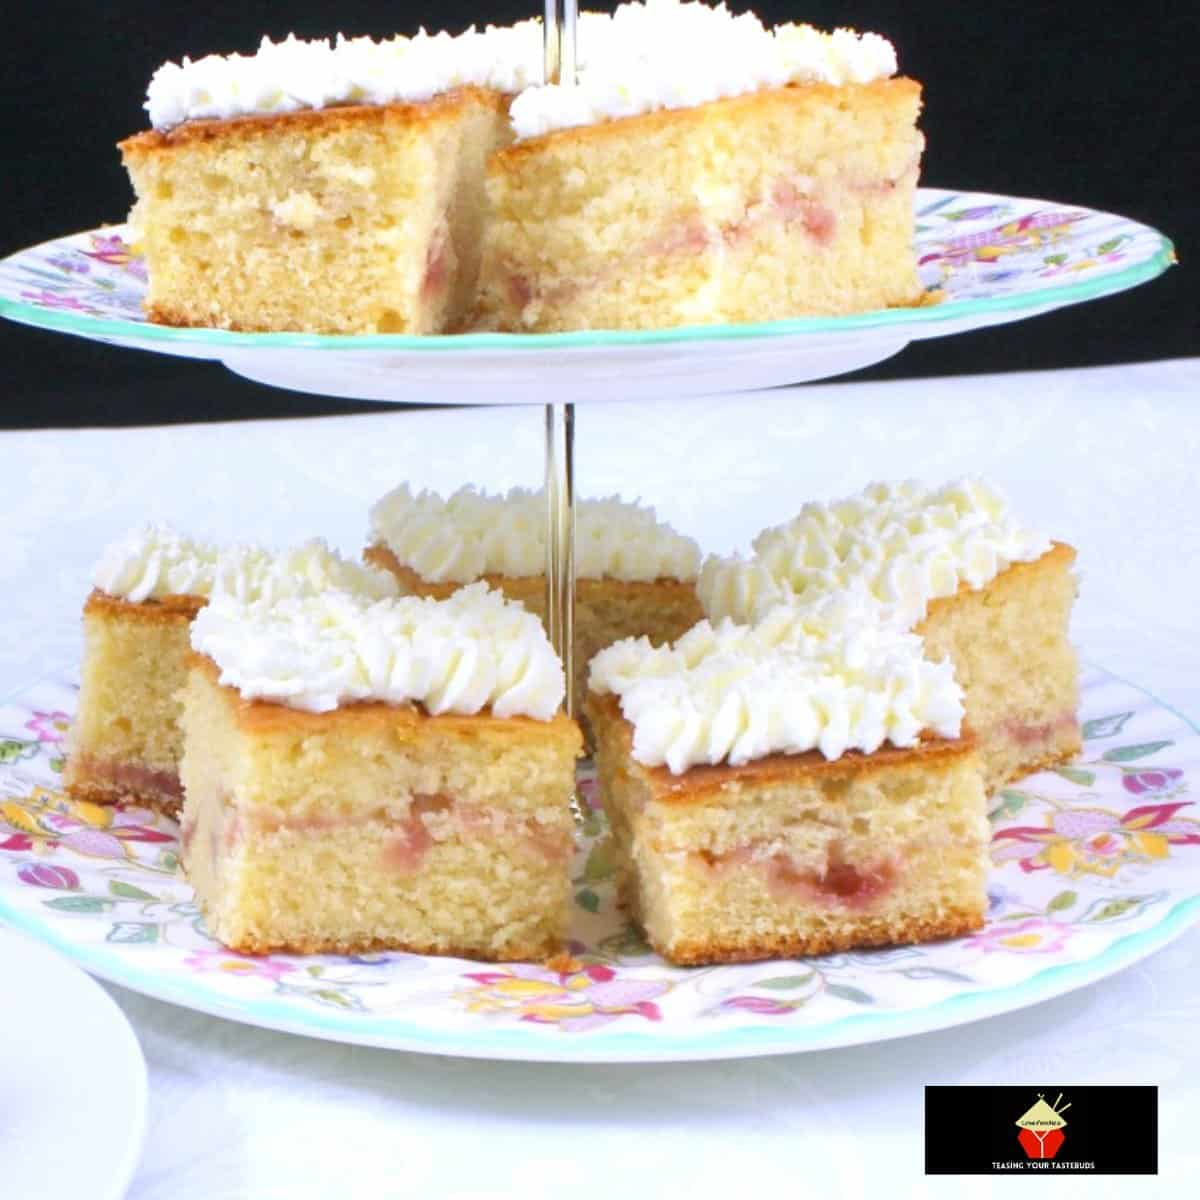 Lemon Drizzle Raspberry Ripple CakeF